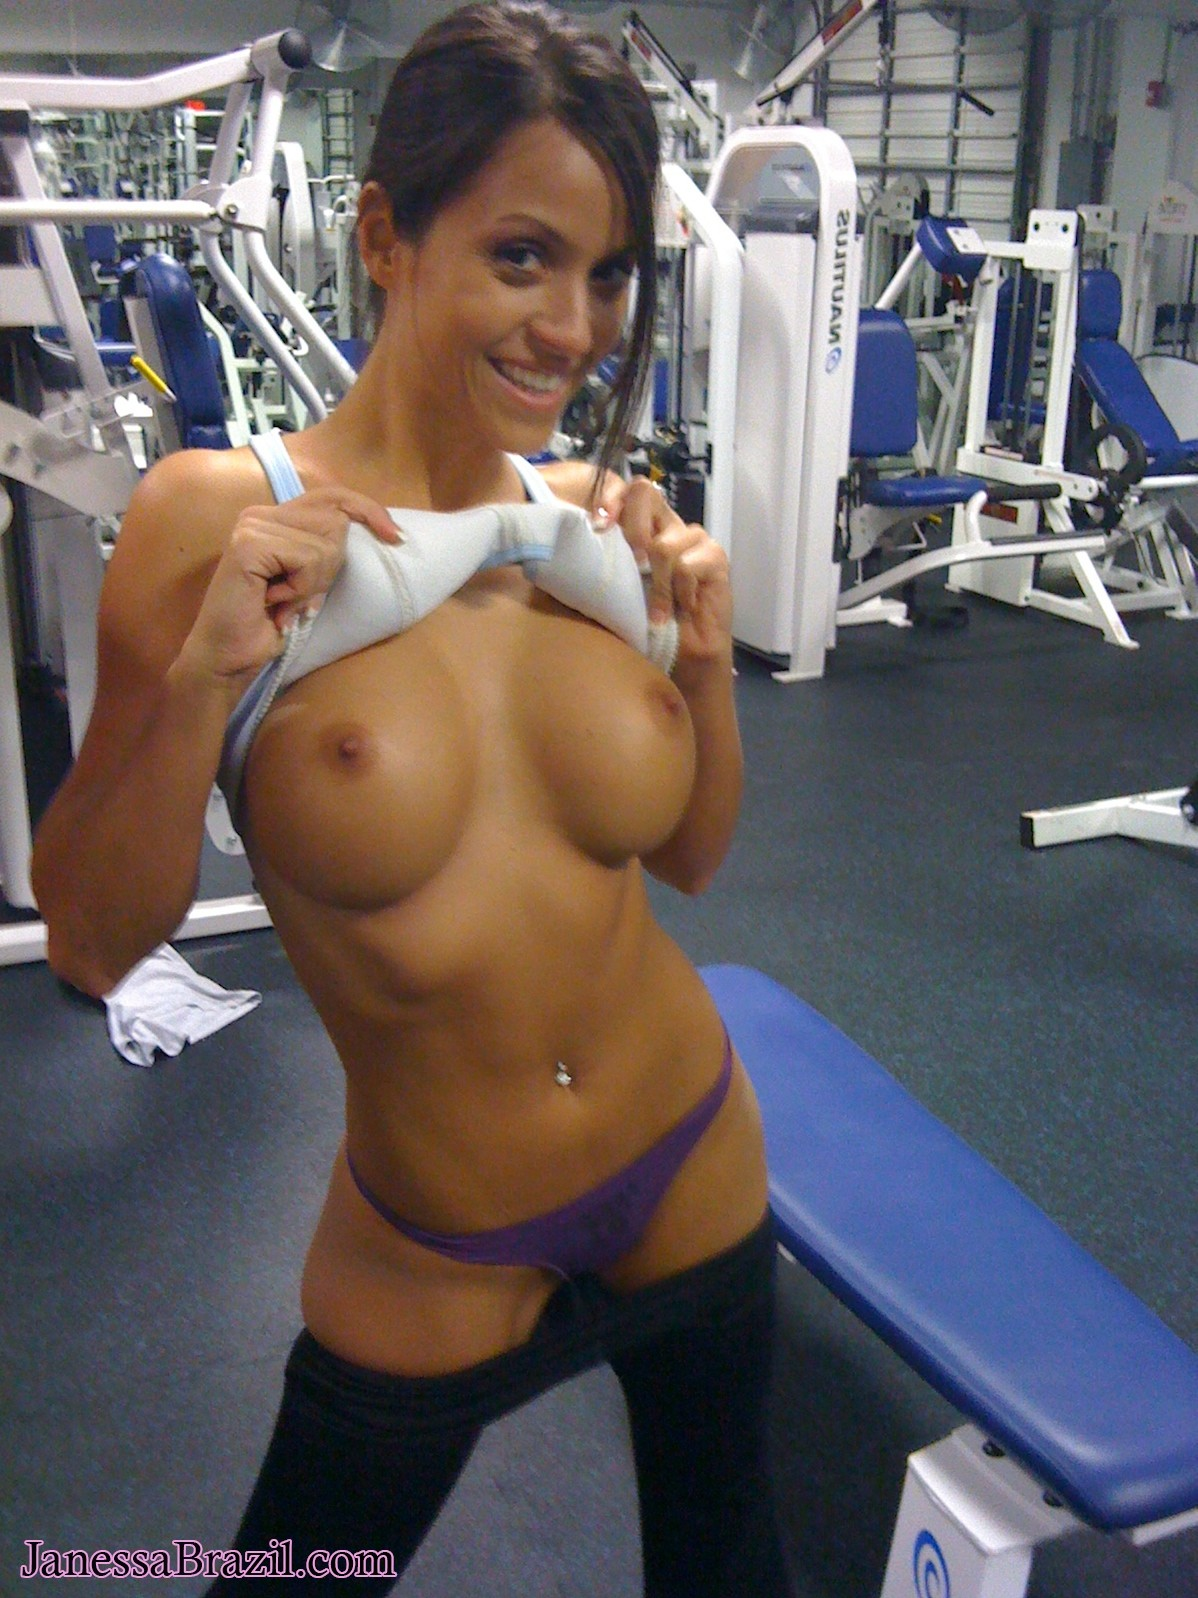 big-boobs-at-gym-girls-losing-virginity